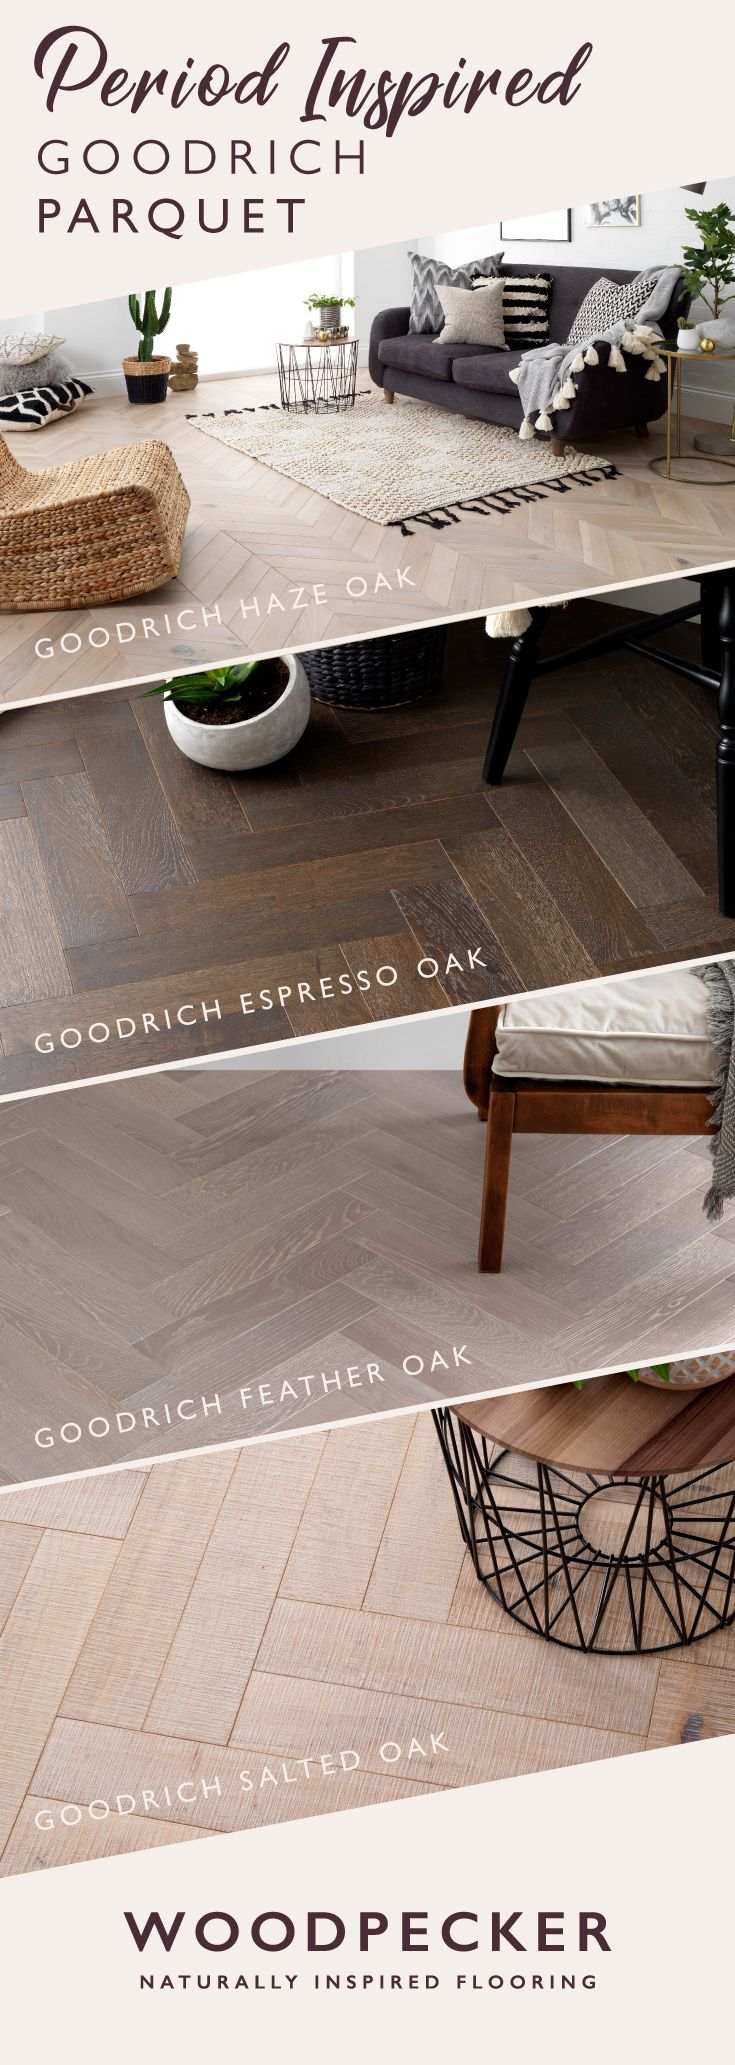 Fall in love with the period inspired designs of the Goodrich parquet collection. Get free flooring samples at our website.